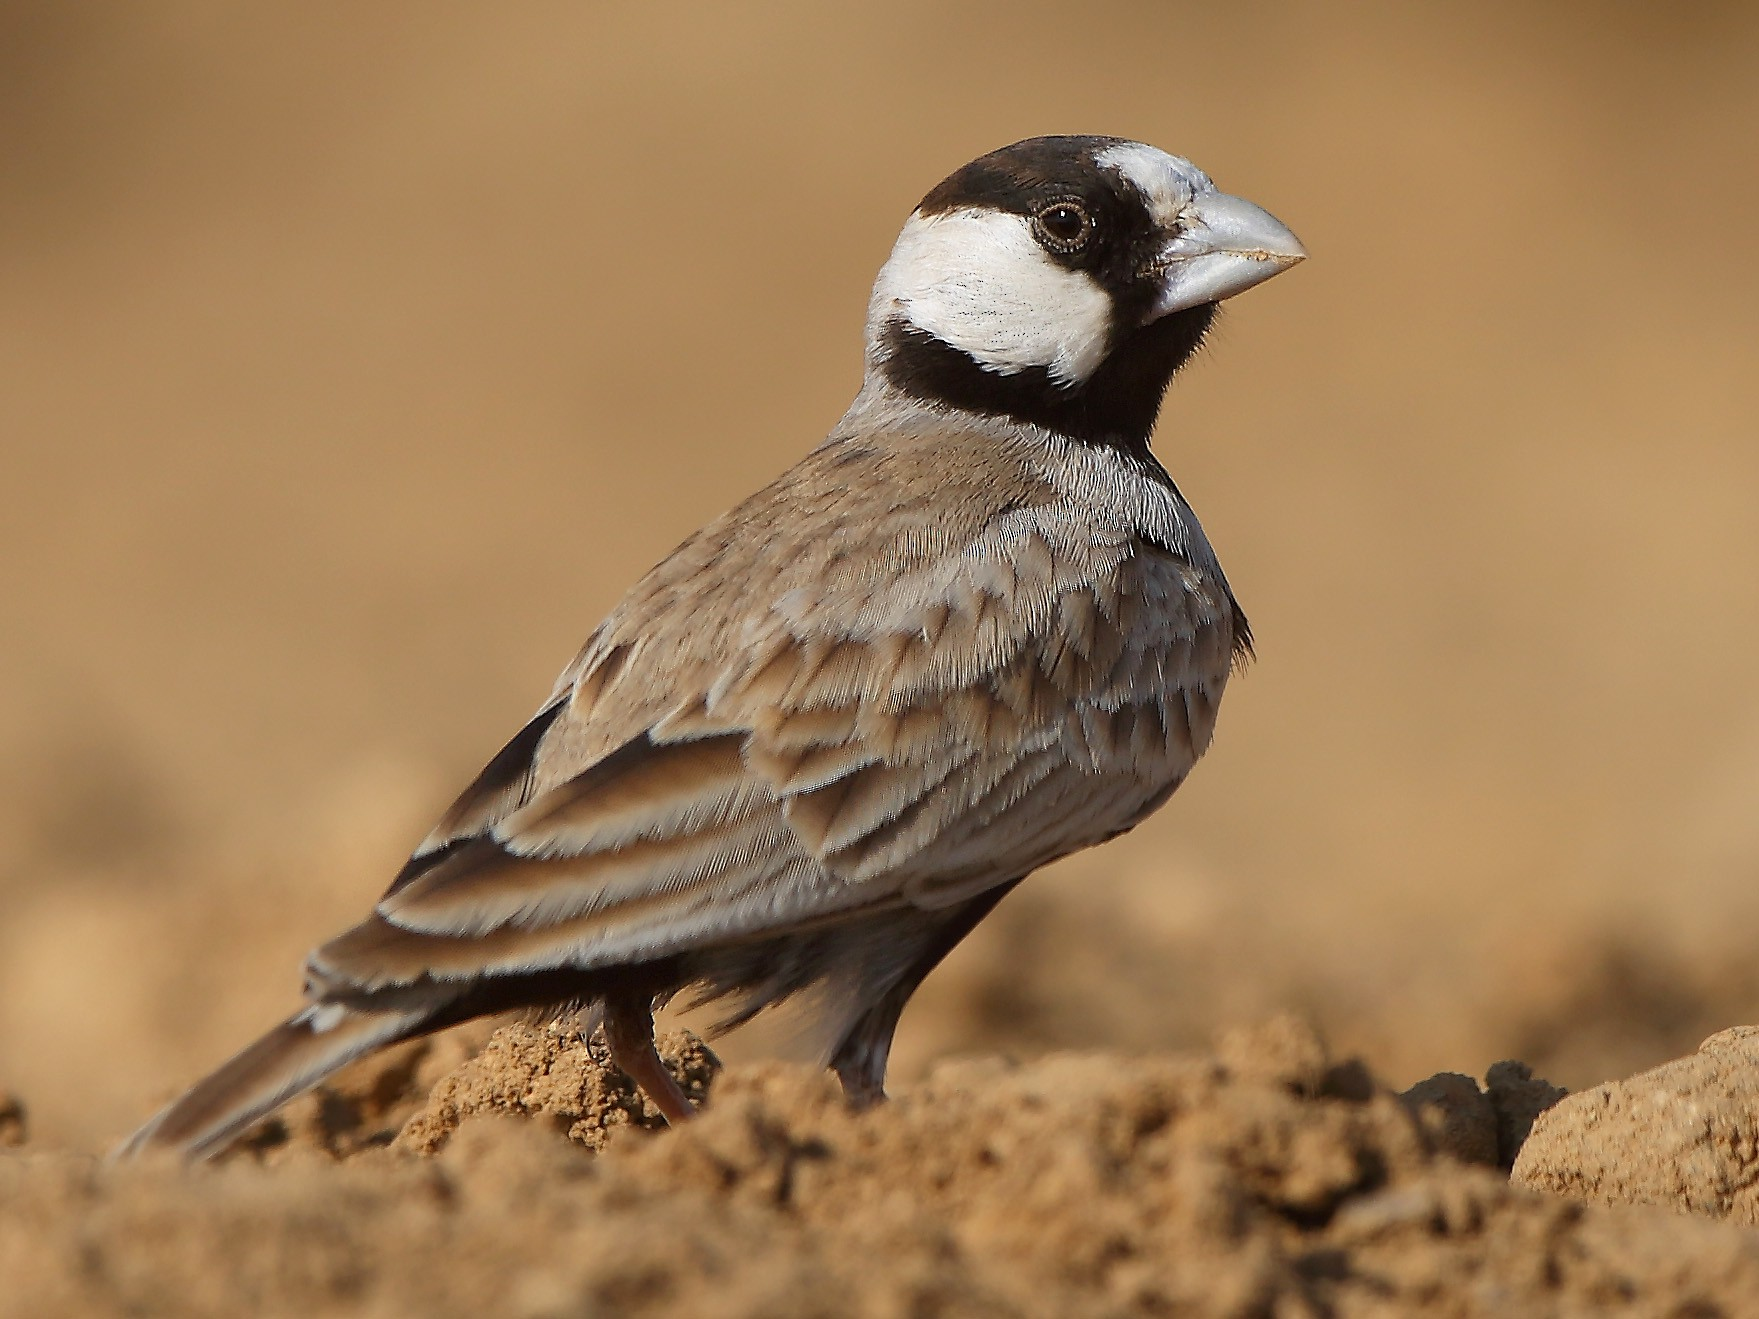 Black-crowned Sparrow-Lark - Albin Jacob